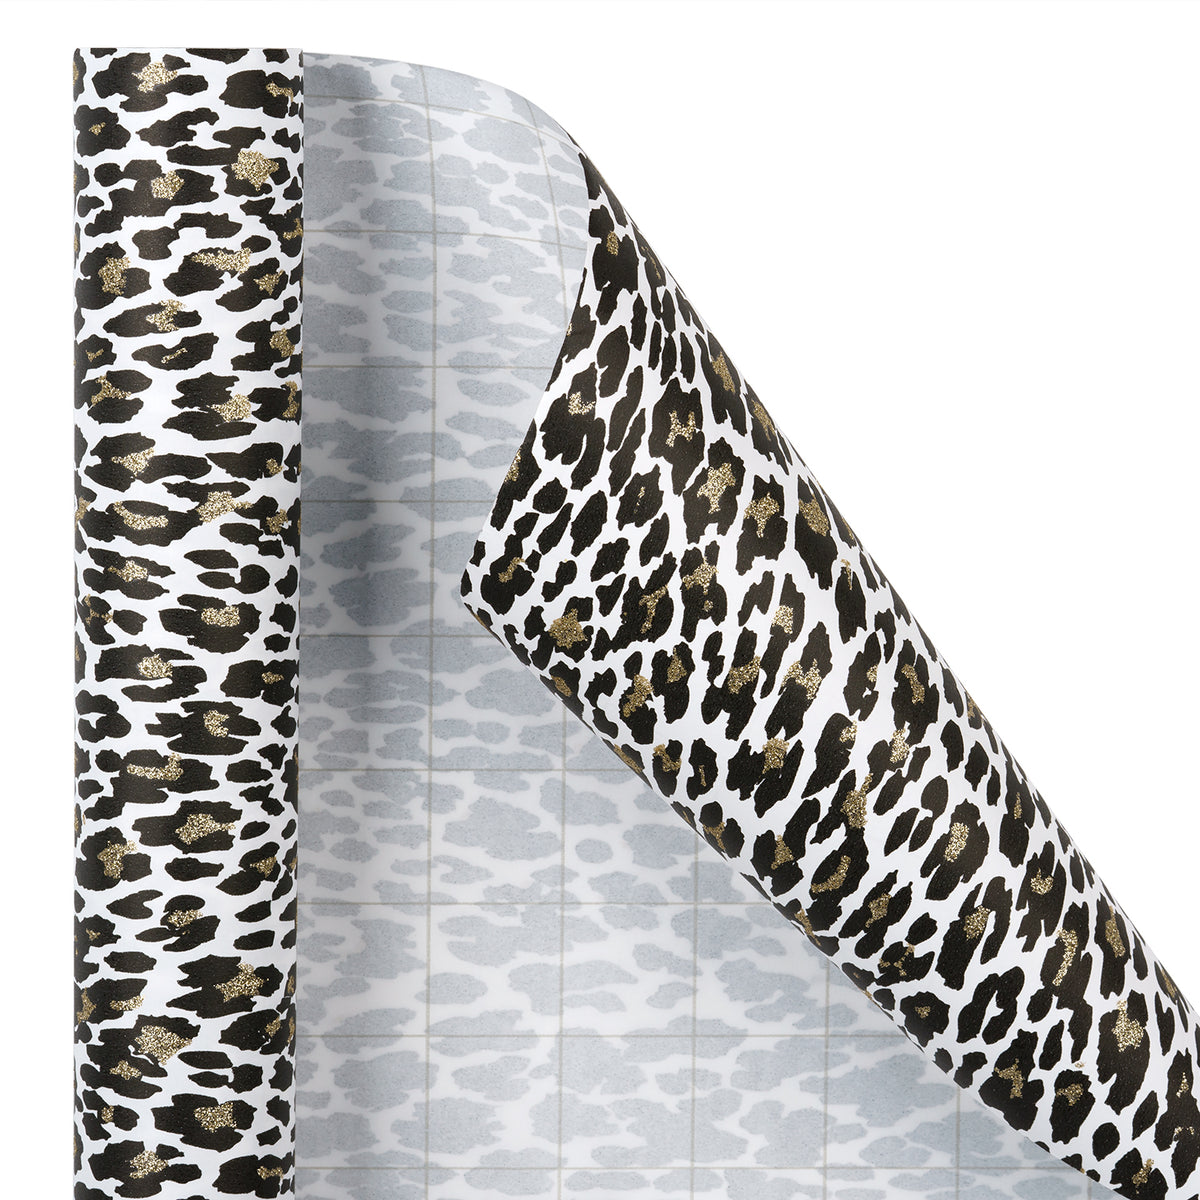 Wrapaholic-Glitter-Design- with-Leopard-Printing-Gift-Wrapping-Pape -Roll-2